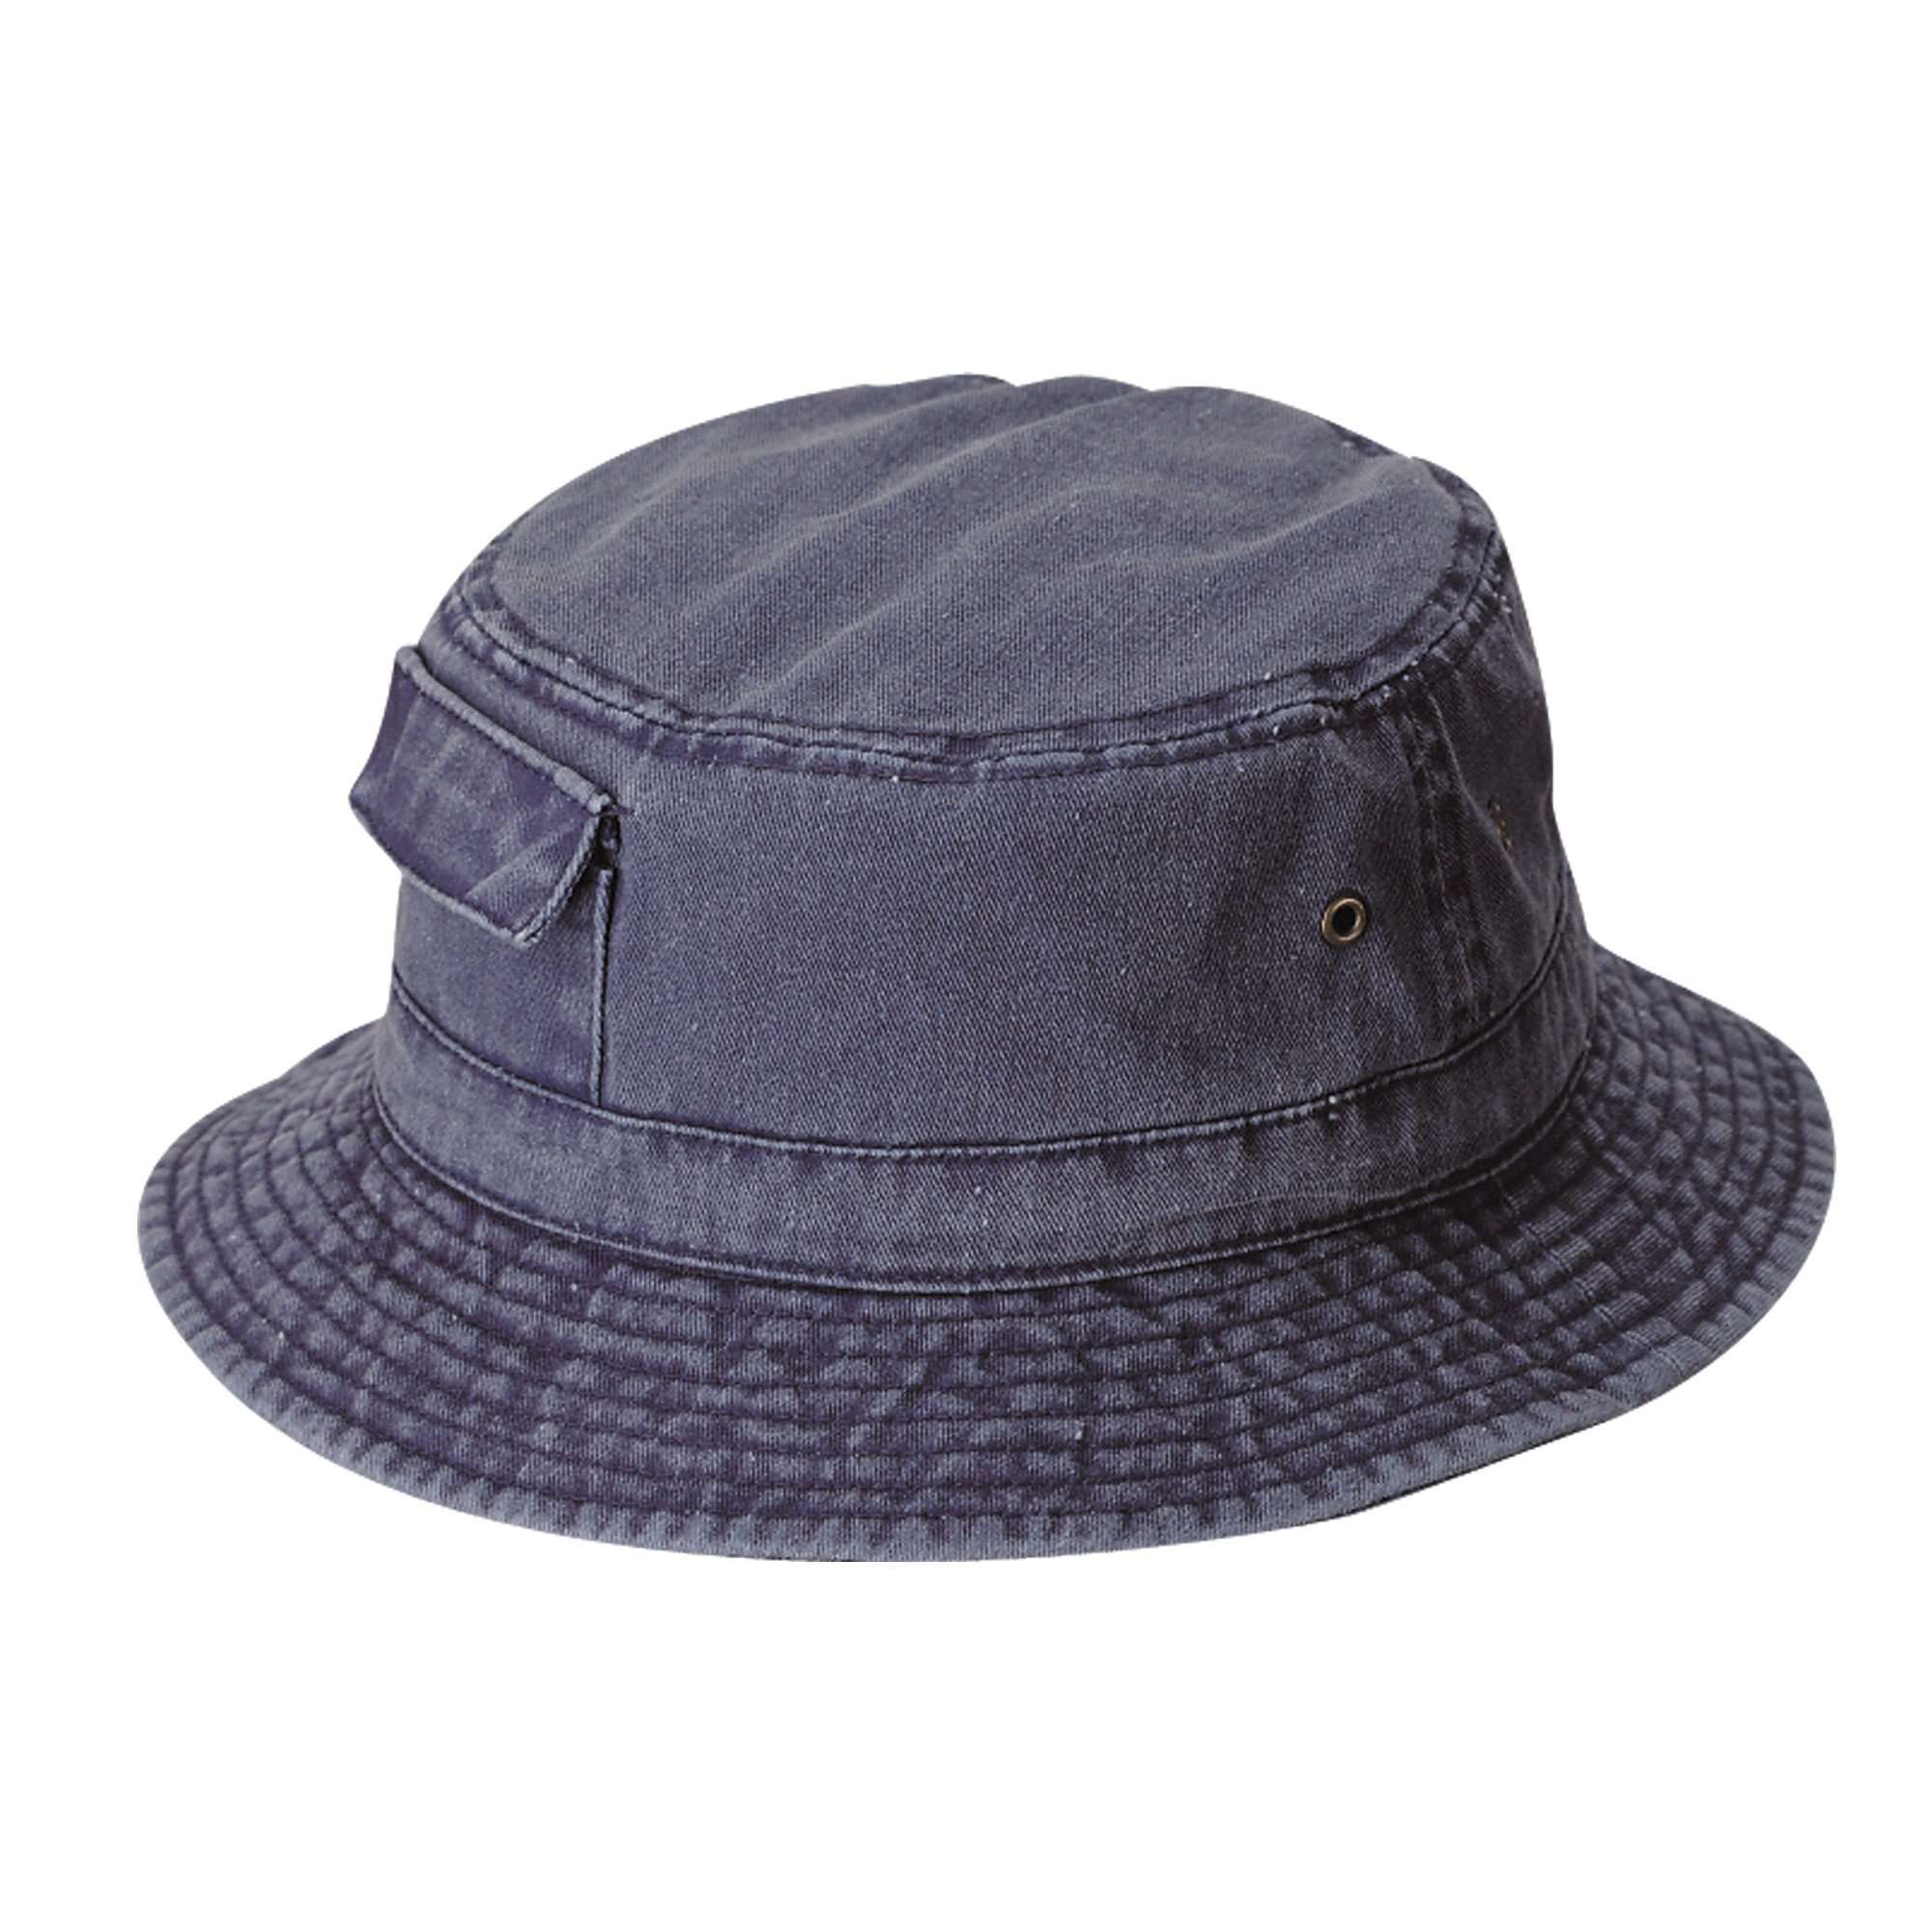 2250b753adb DPC Dyed Twill Bucket Hat with Side Pocket - SetarTrading Hats